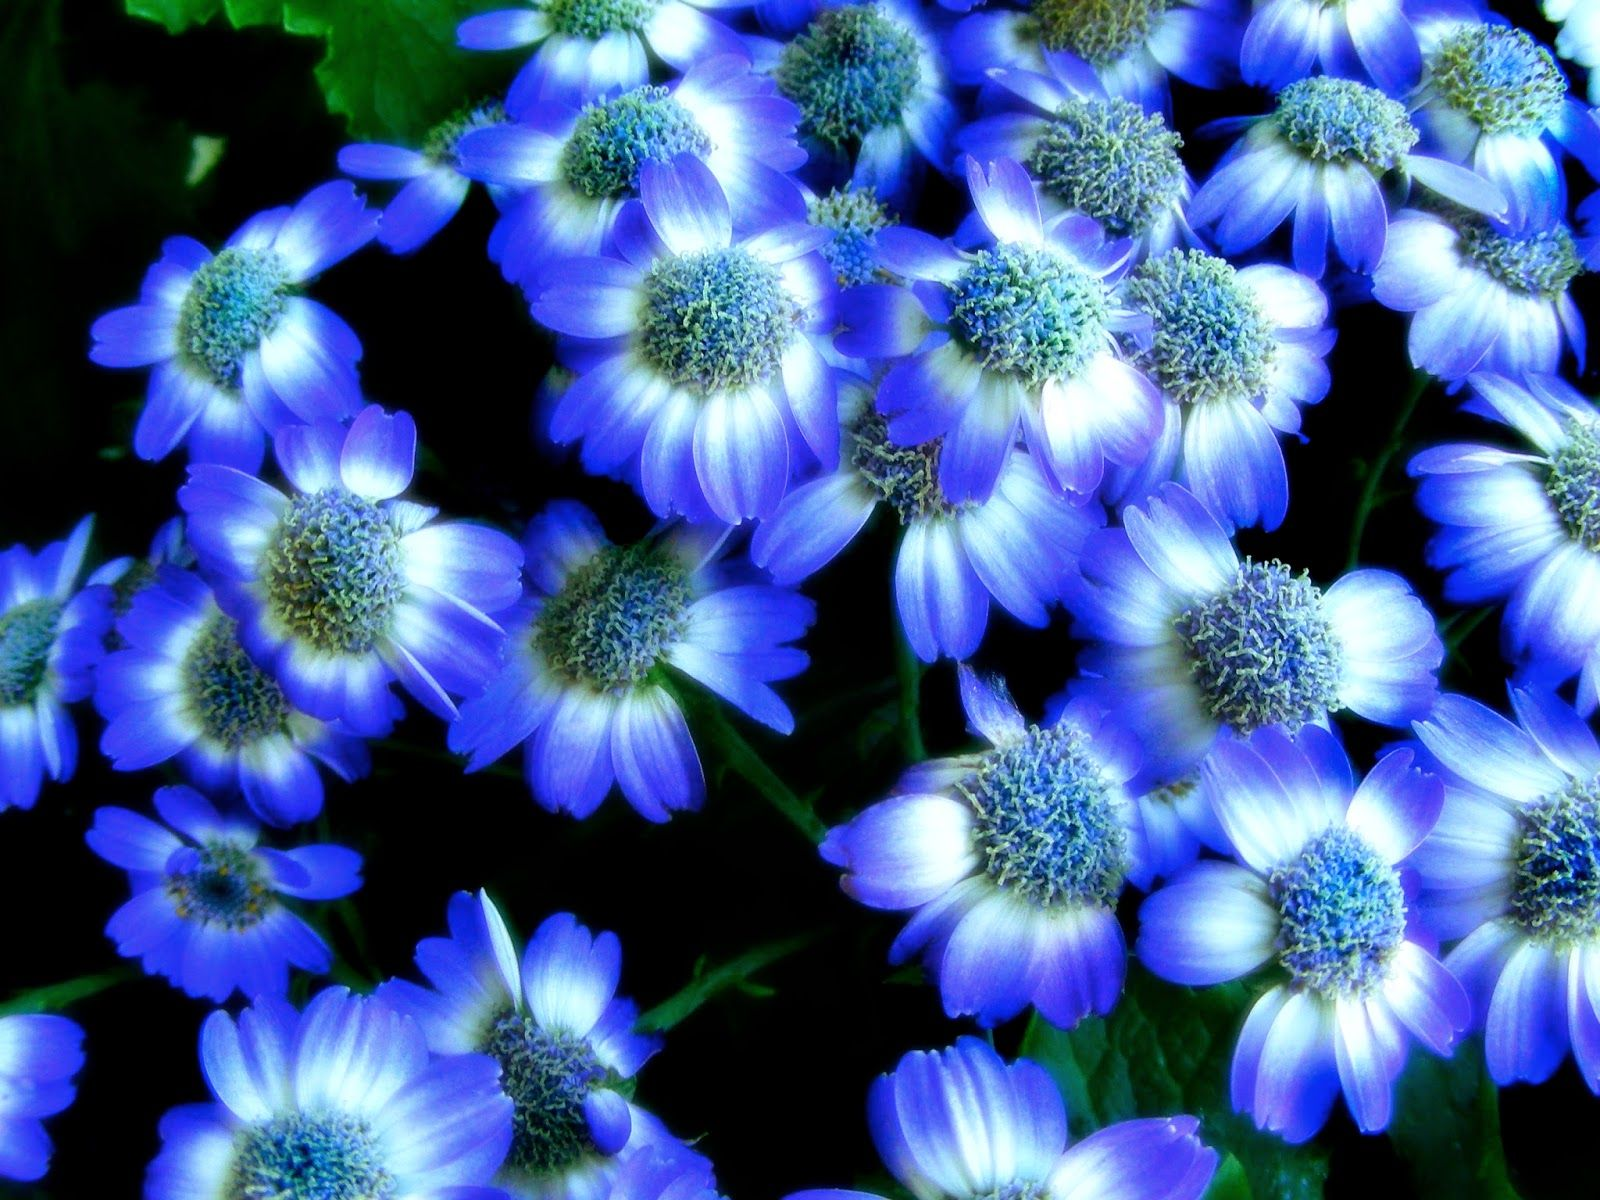 2 Nice Flowers Wallpaper Desktop Background Full Screen | anaknulp